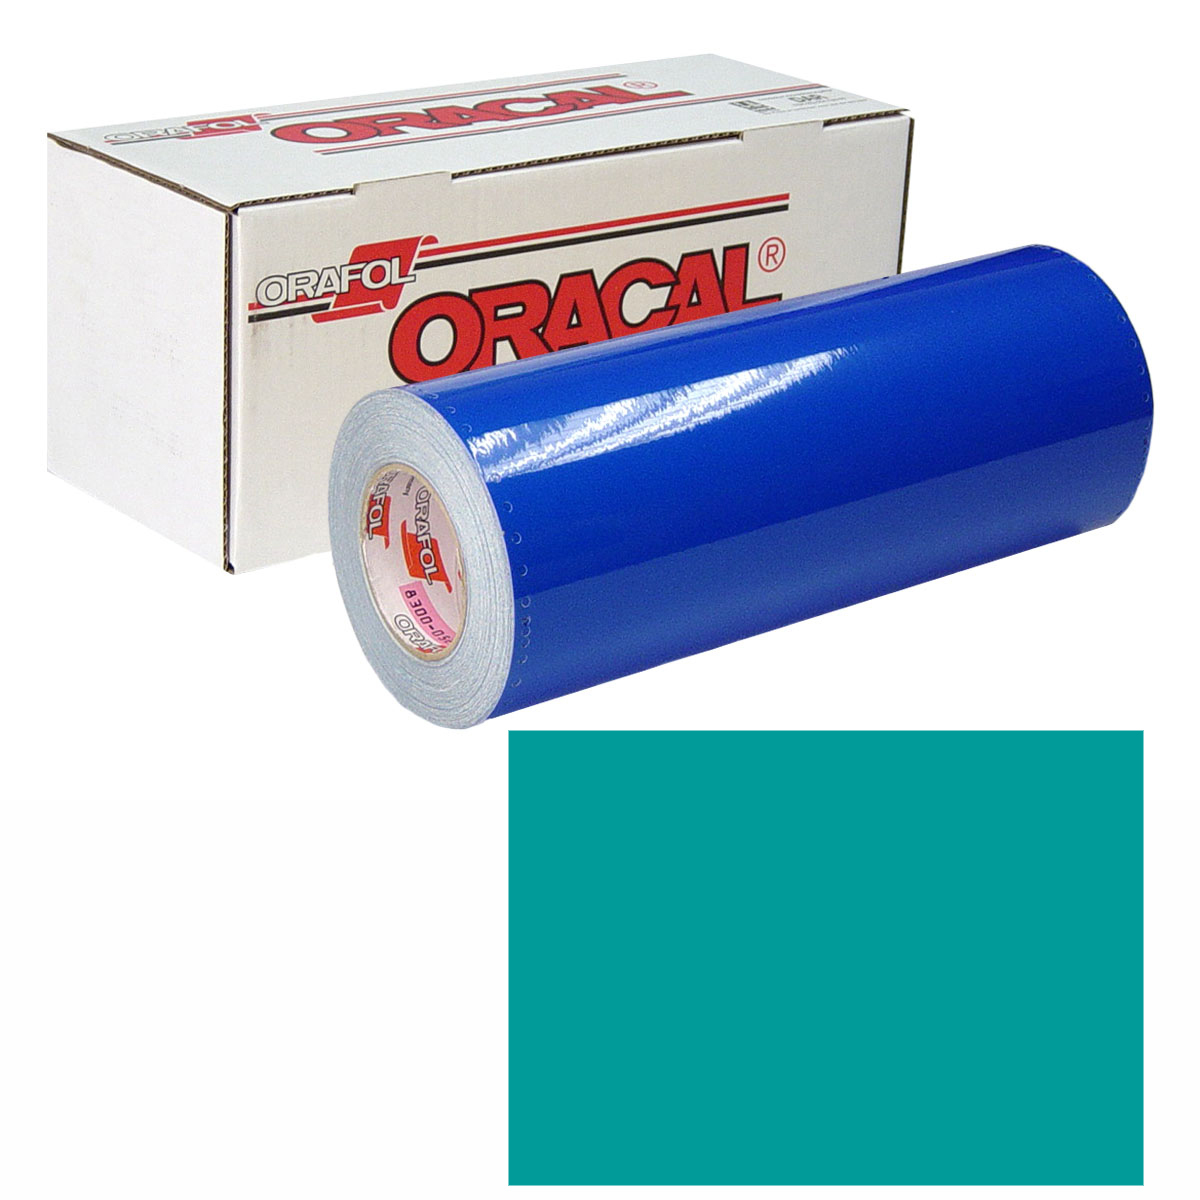 ORACAL 631 Unp 24in X 50yd 054 Turquoise